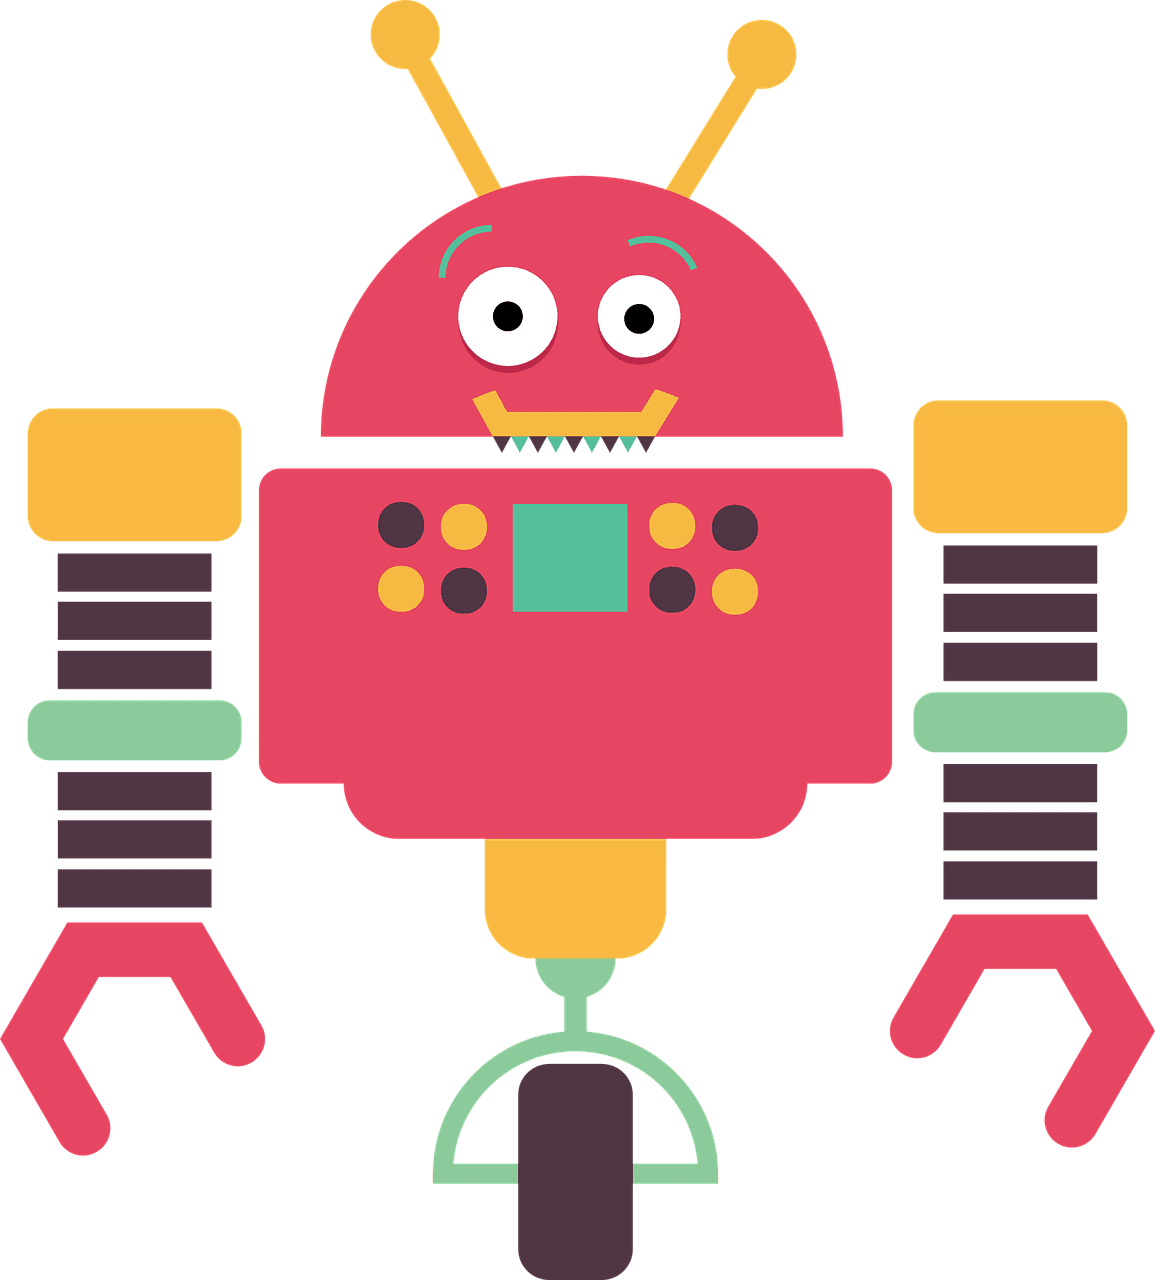 rpa software